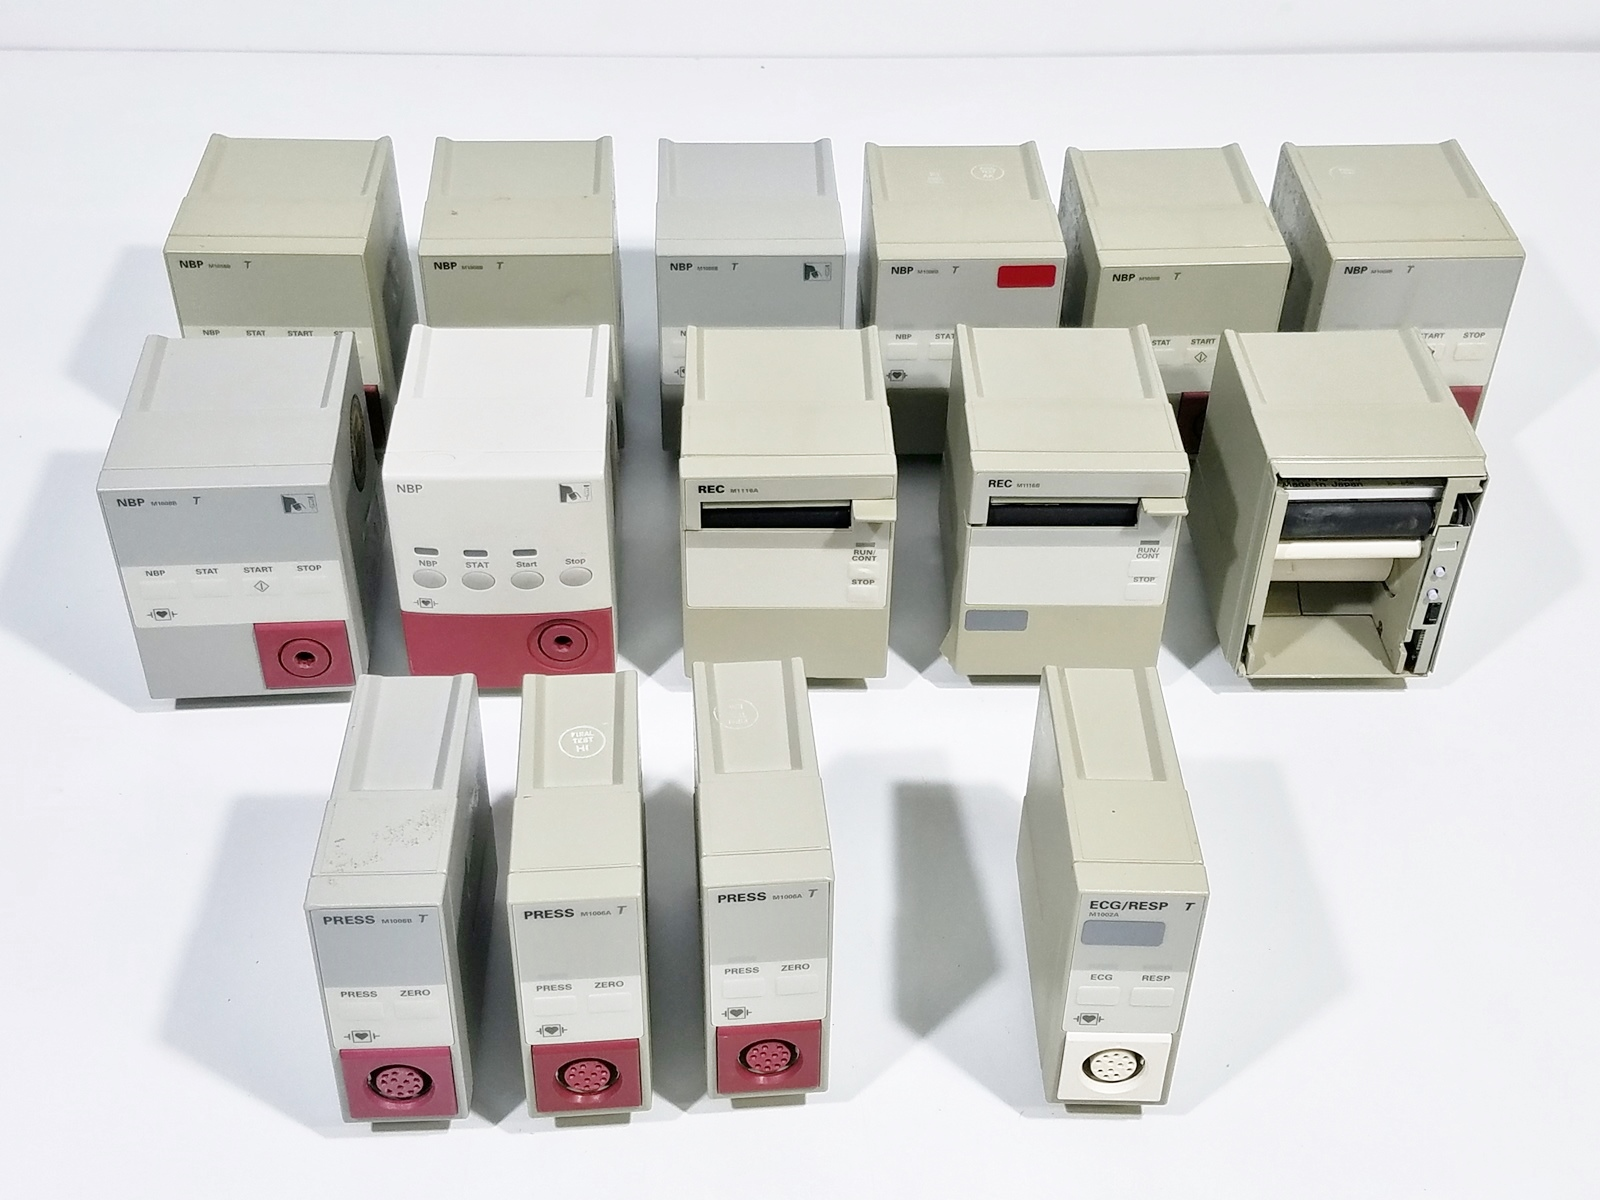 Lot 54 - HEWLETT-PACKARD NBP MODULES